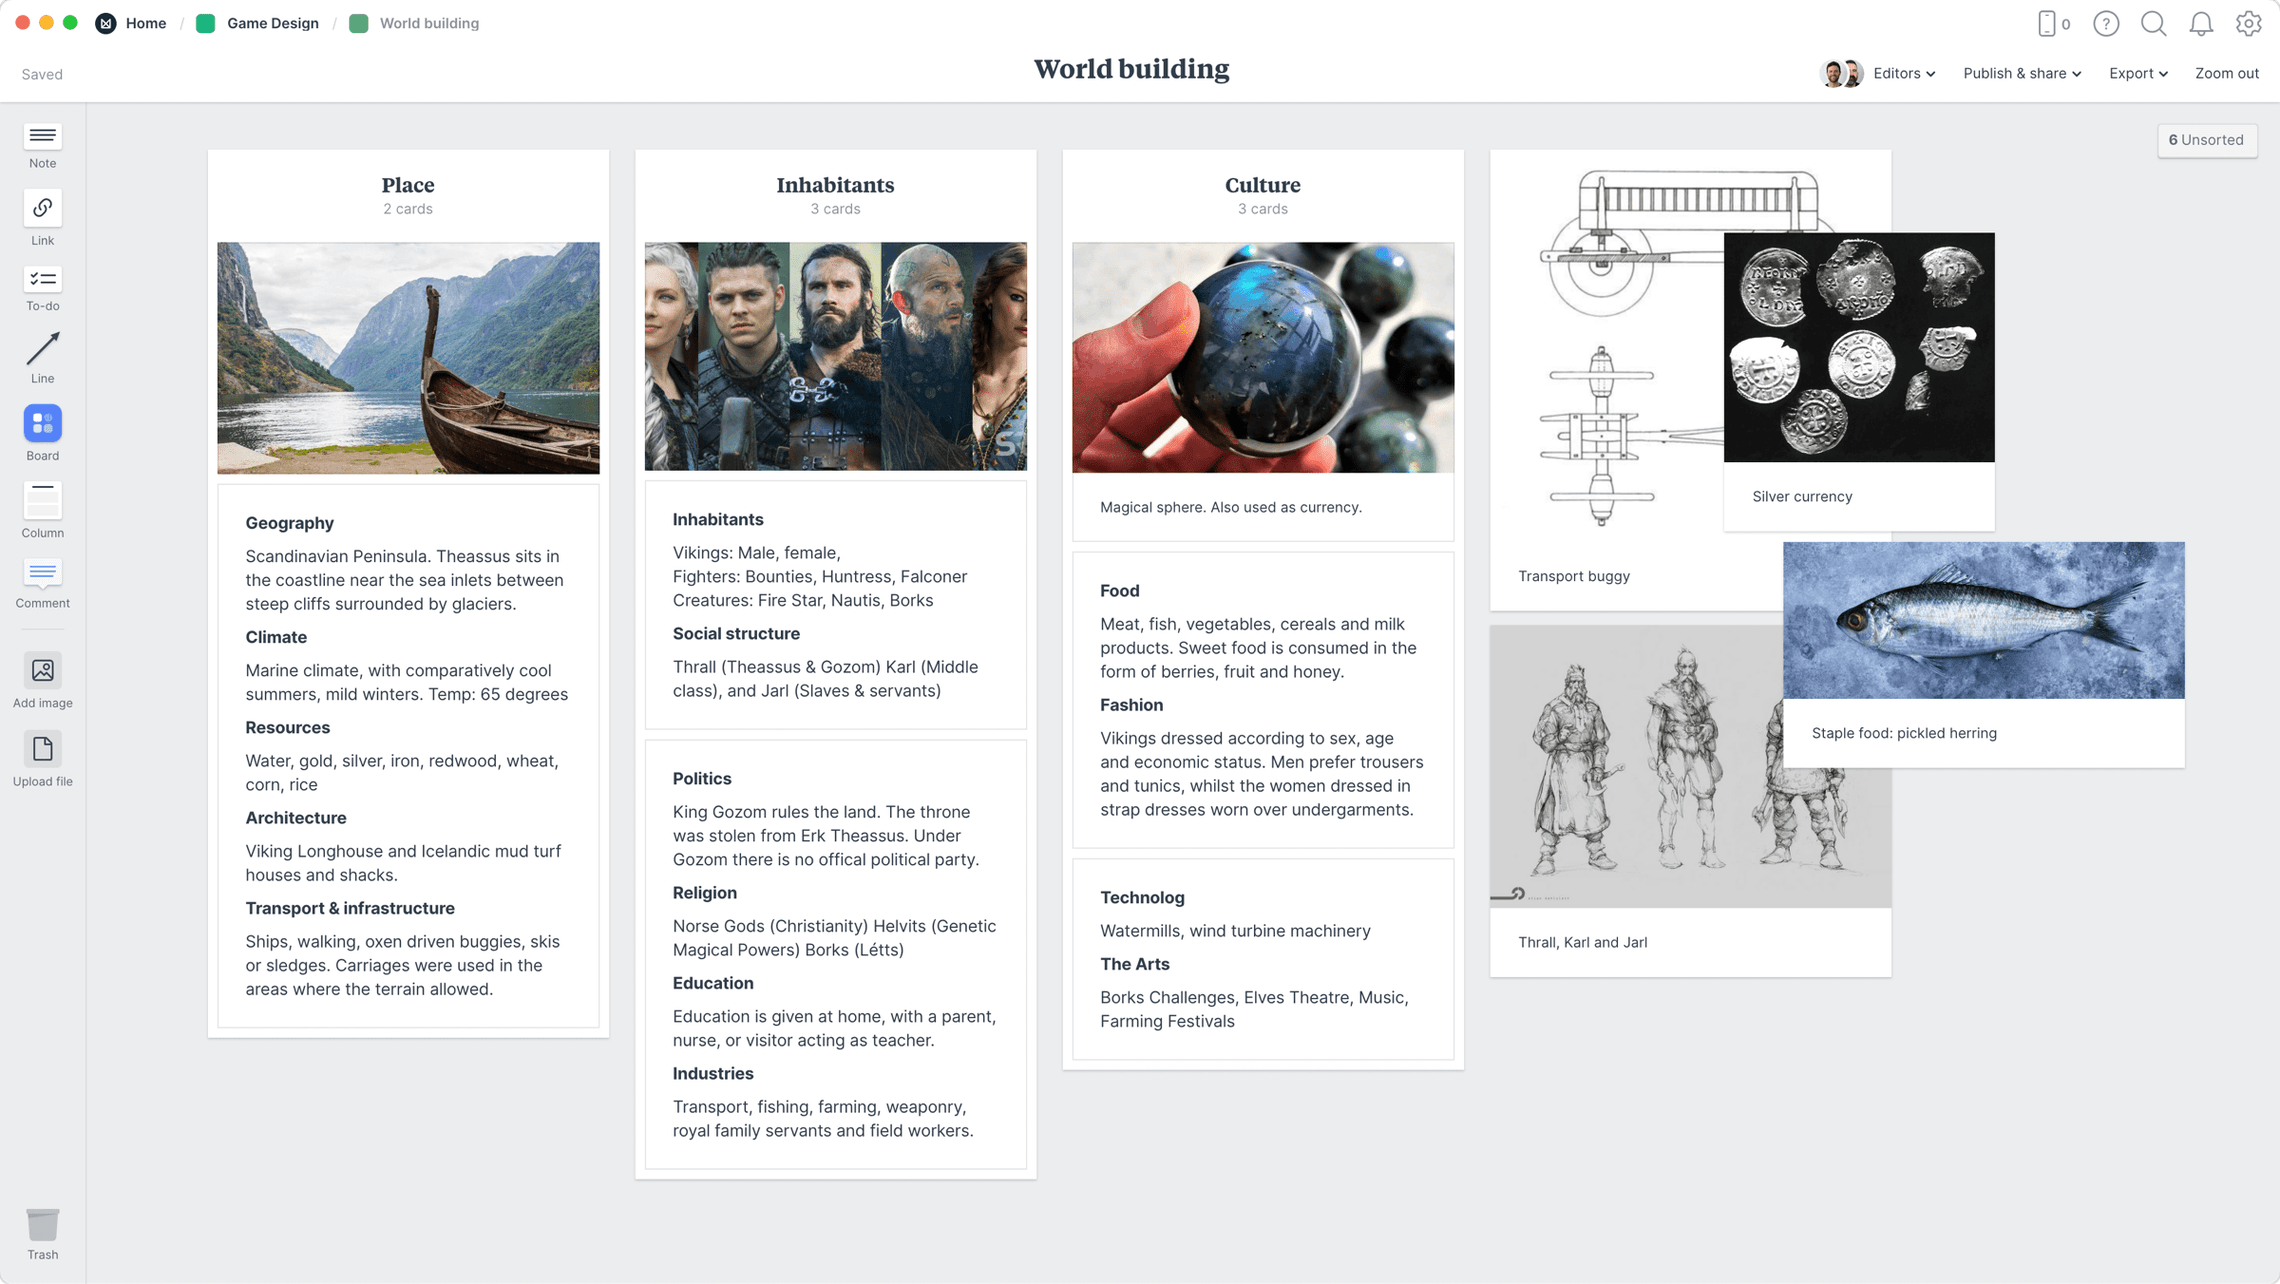 Game Worldbuilding  Template, within the Milanote app